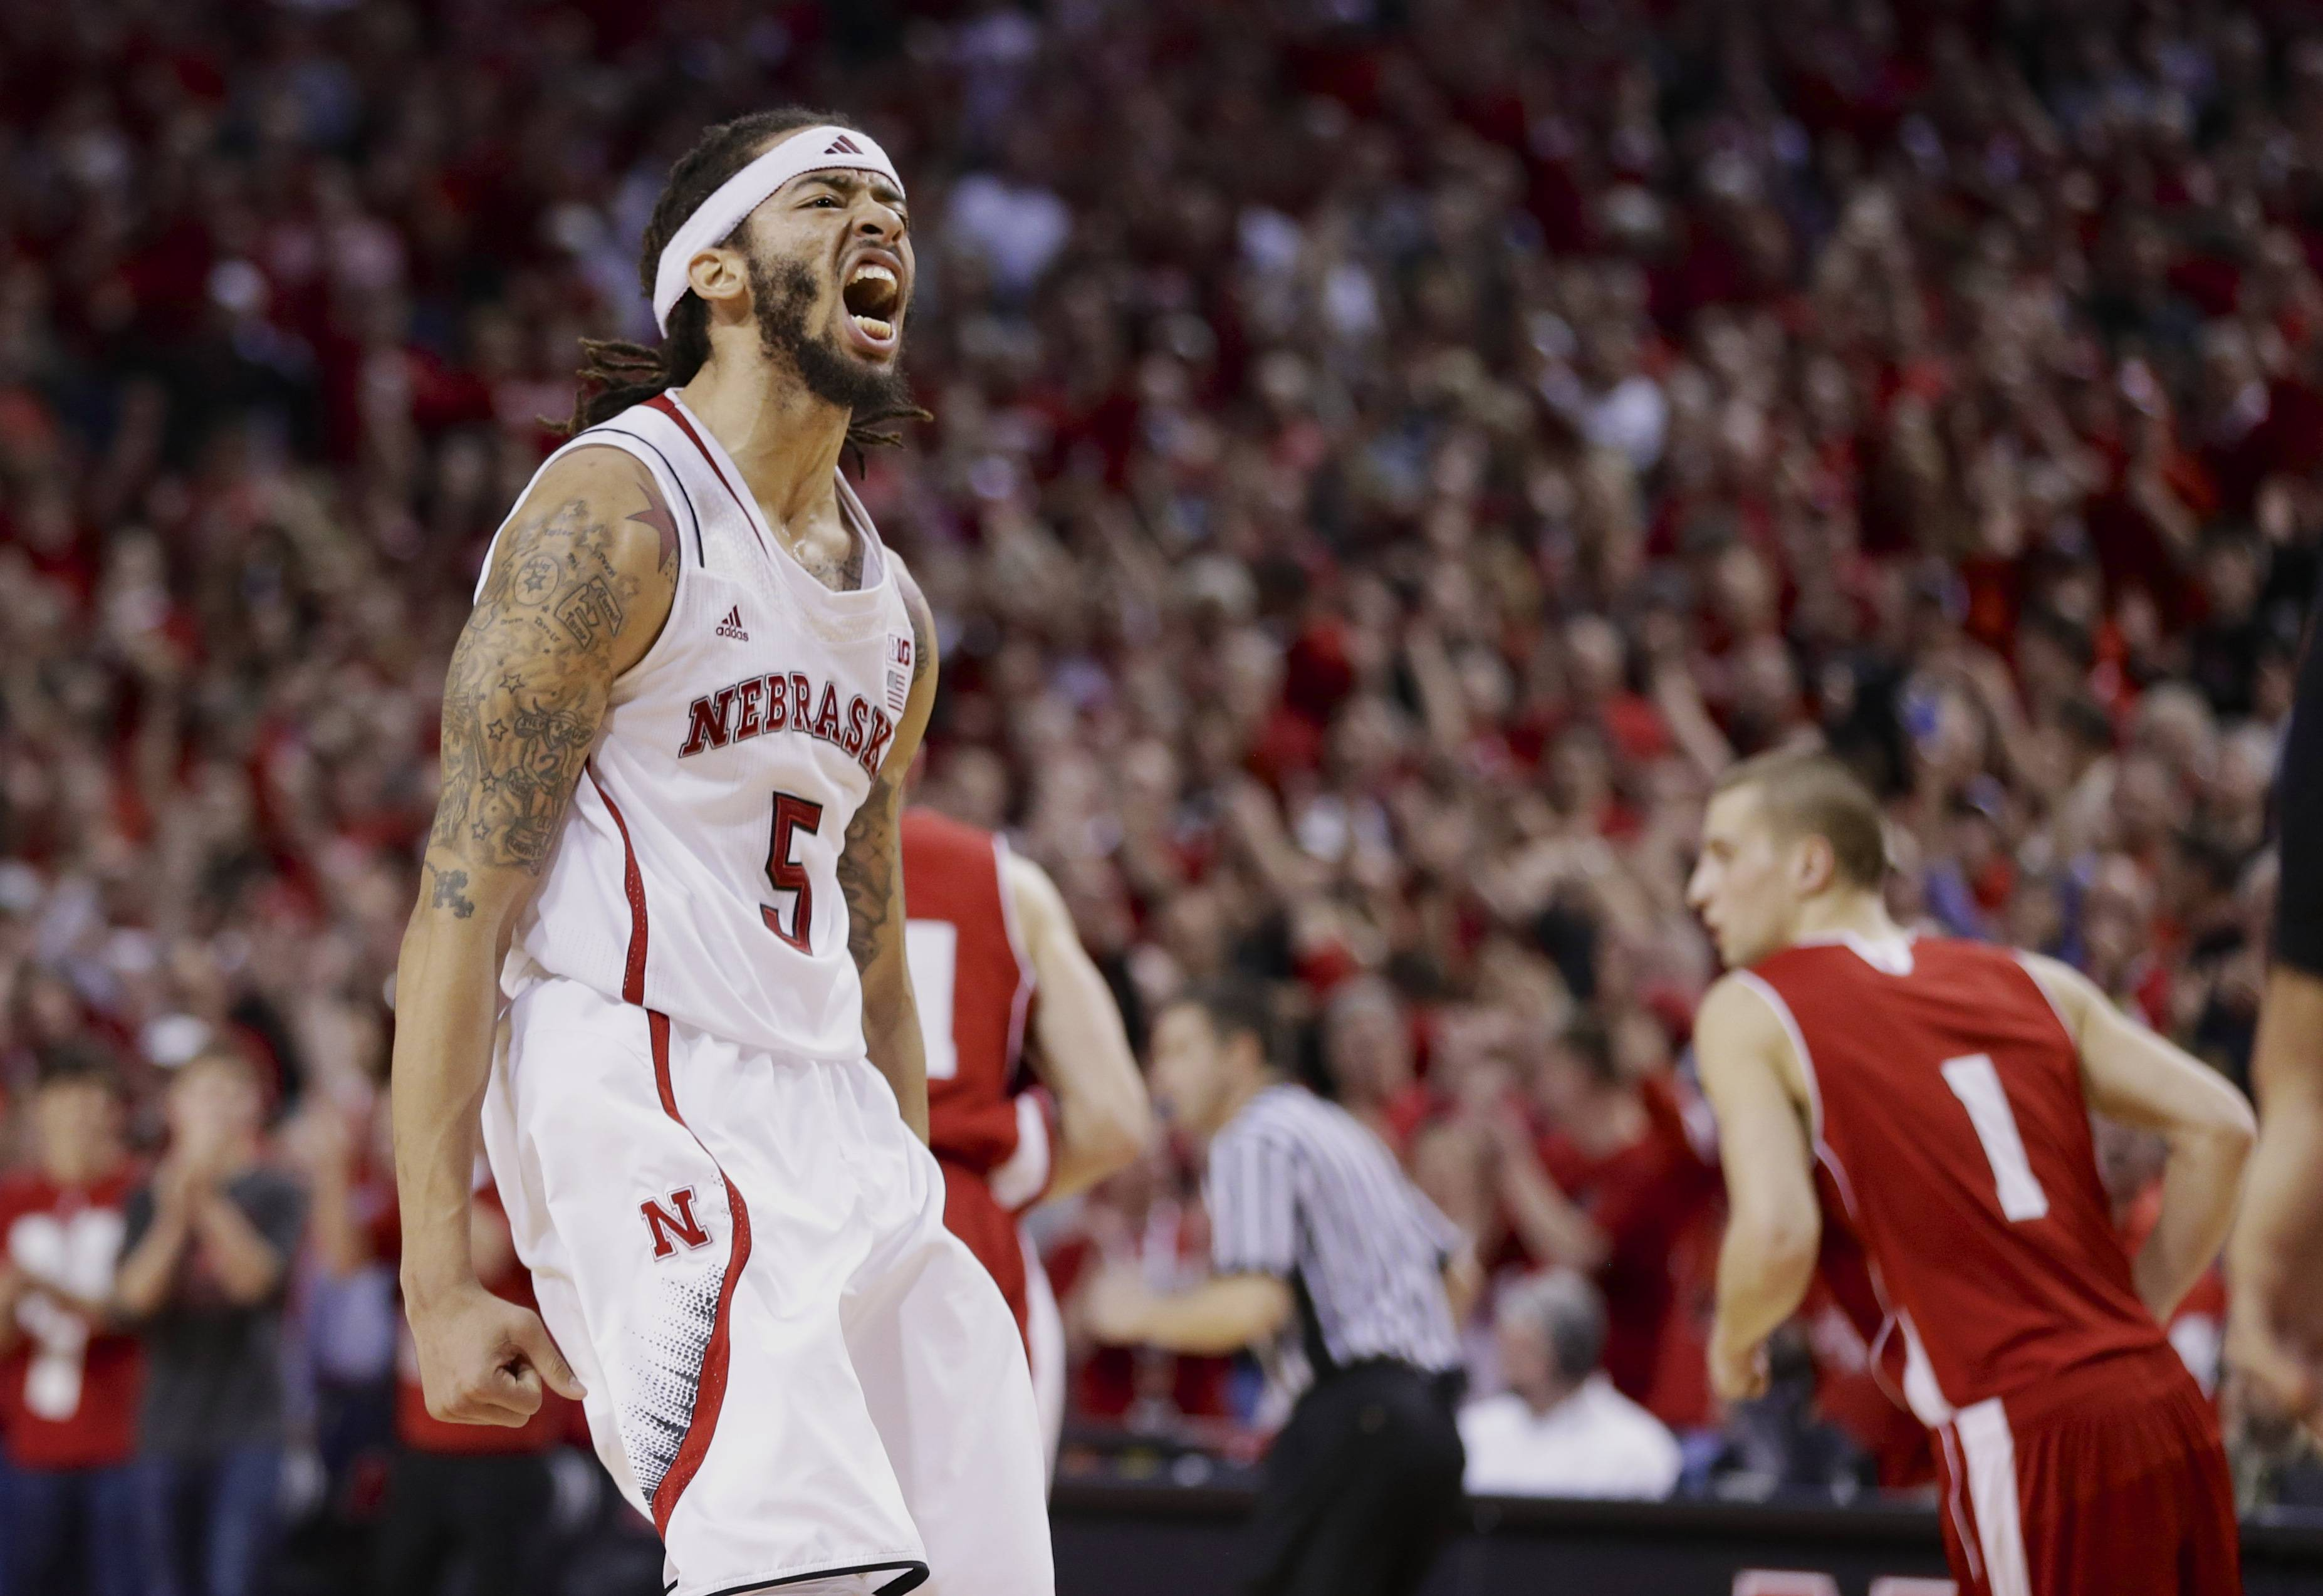 Nebraska's Terran Petteway (5) reacts after scoring in the second half of an NCAA college basketball game Sunday against Wisconsin in Lincoln, Neb. Nebraska won 77-68. The Cornhuskers will more than likely find themselves in the March Madness hunt for the NCAA tourney title.